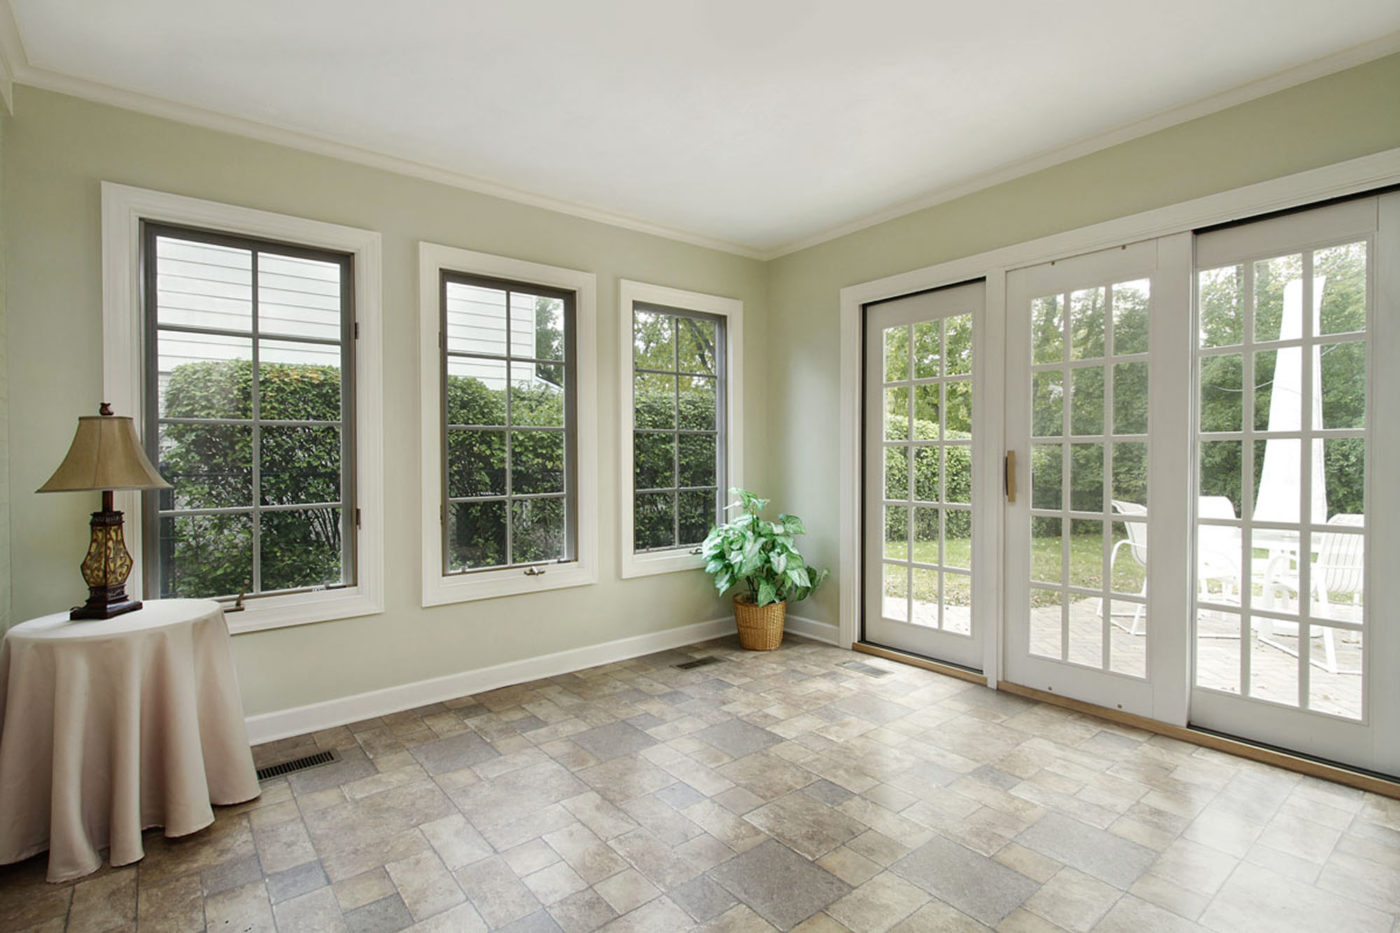 Home Remodel Contractors in the Chicago Suburbs